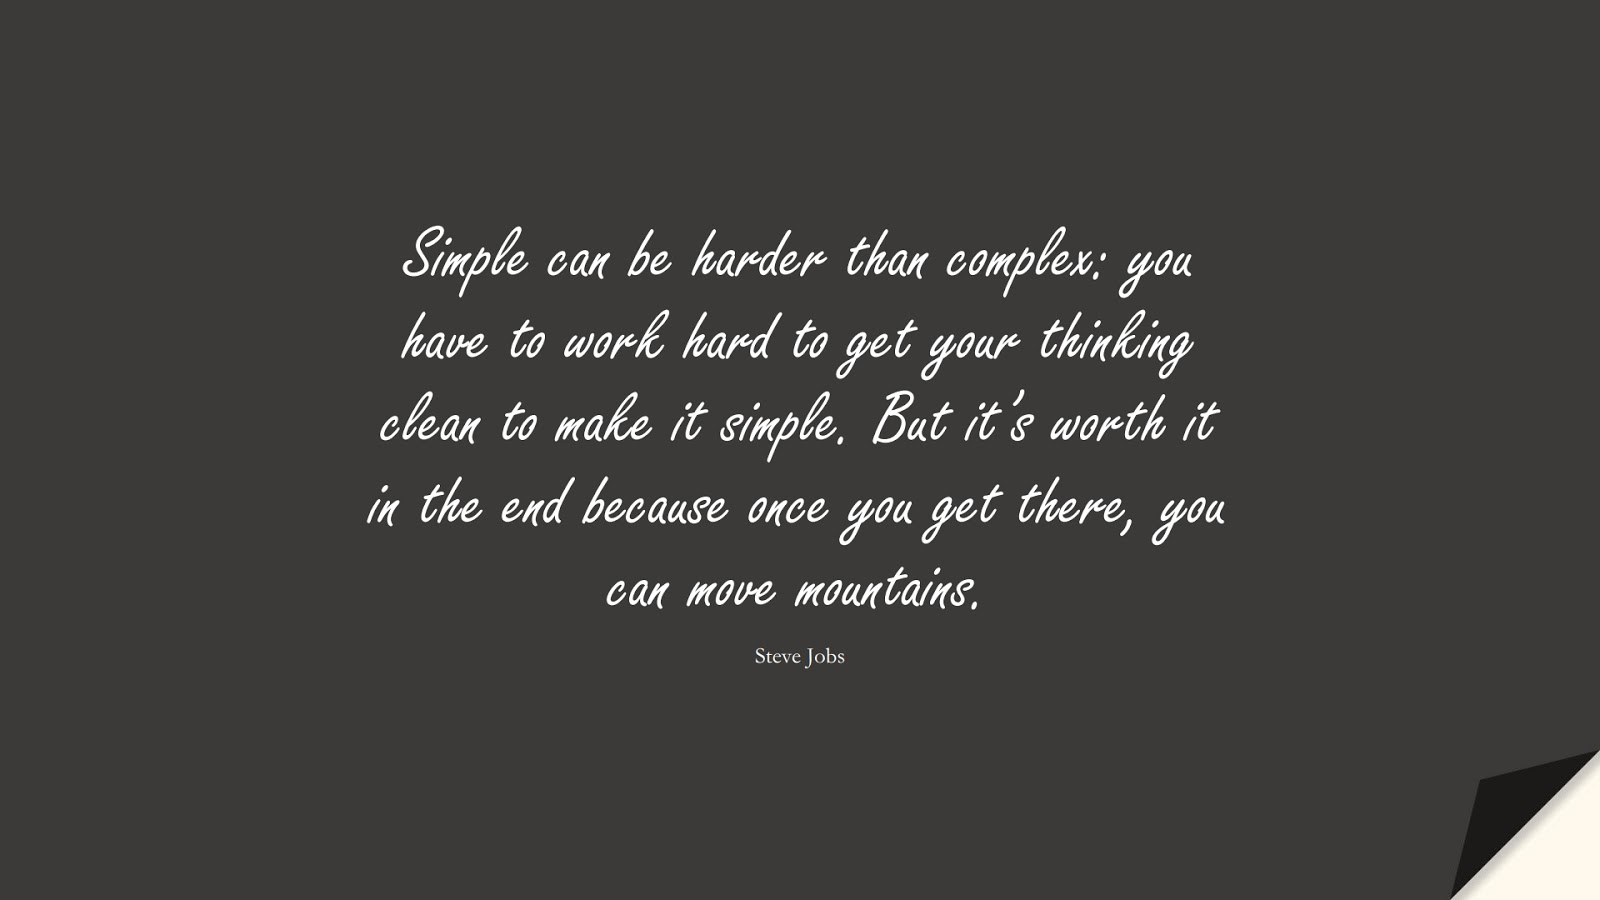 Simple can be harder than complex: you have to work hard to get your thinking clean to make it simple. But it's worth it in the end because once you get there, you can move mountains. (Steve Jobs);  #SteveJobsQuotes